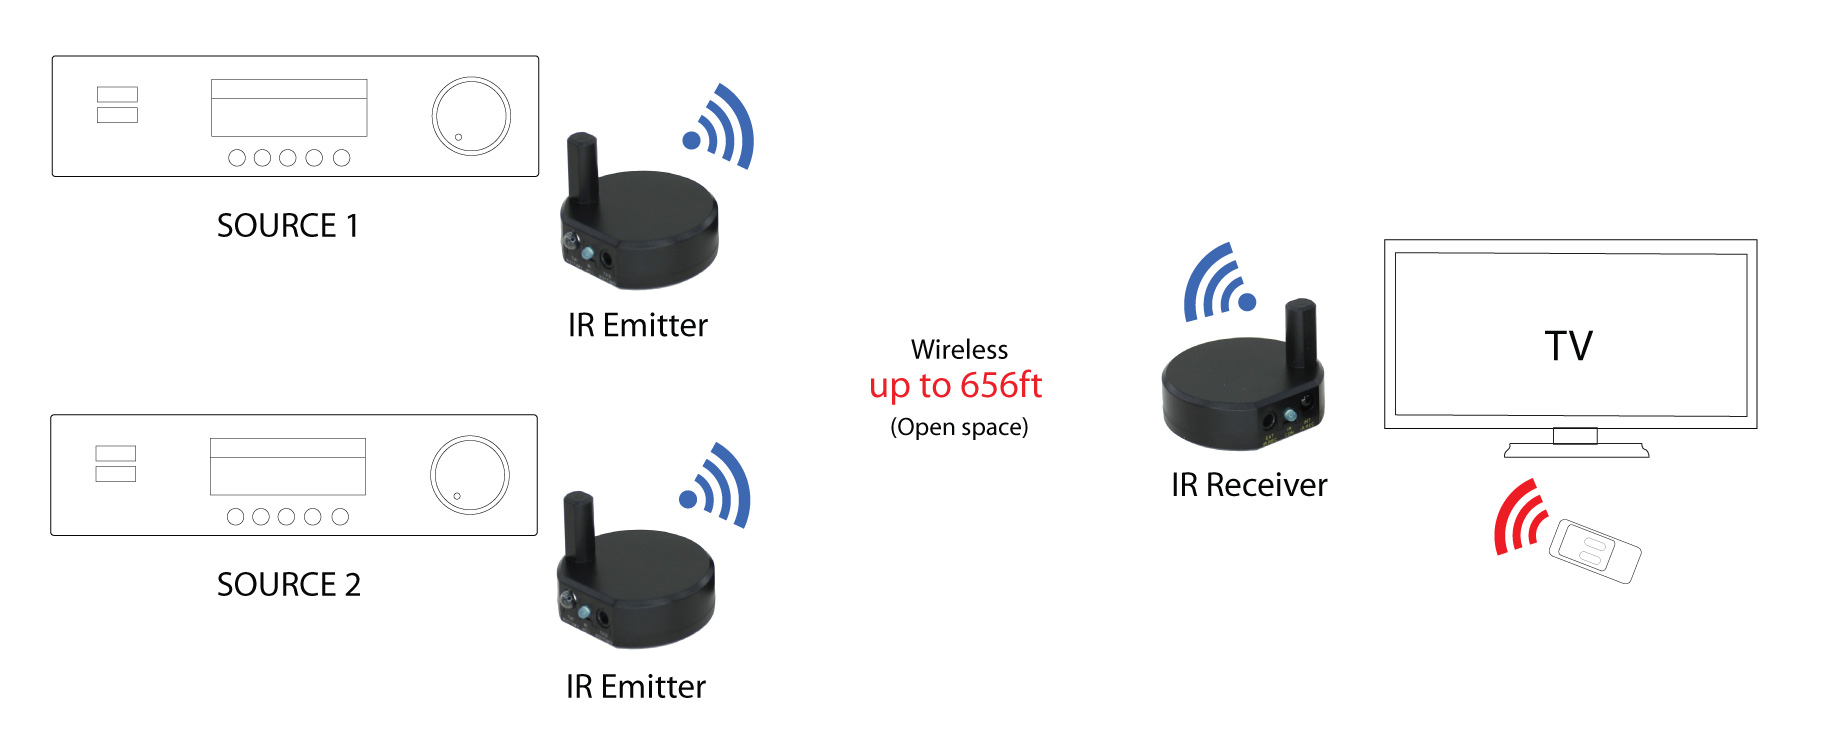 Wireless Ir Repeater  Up To 656ft